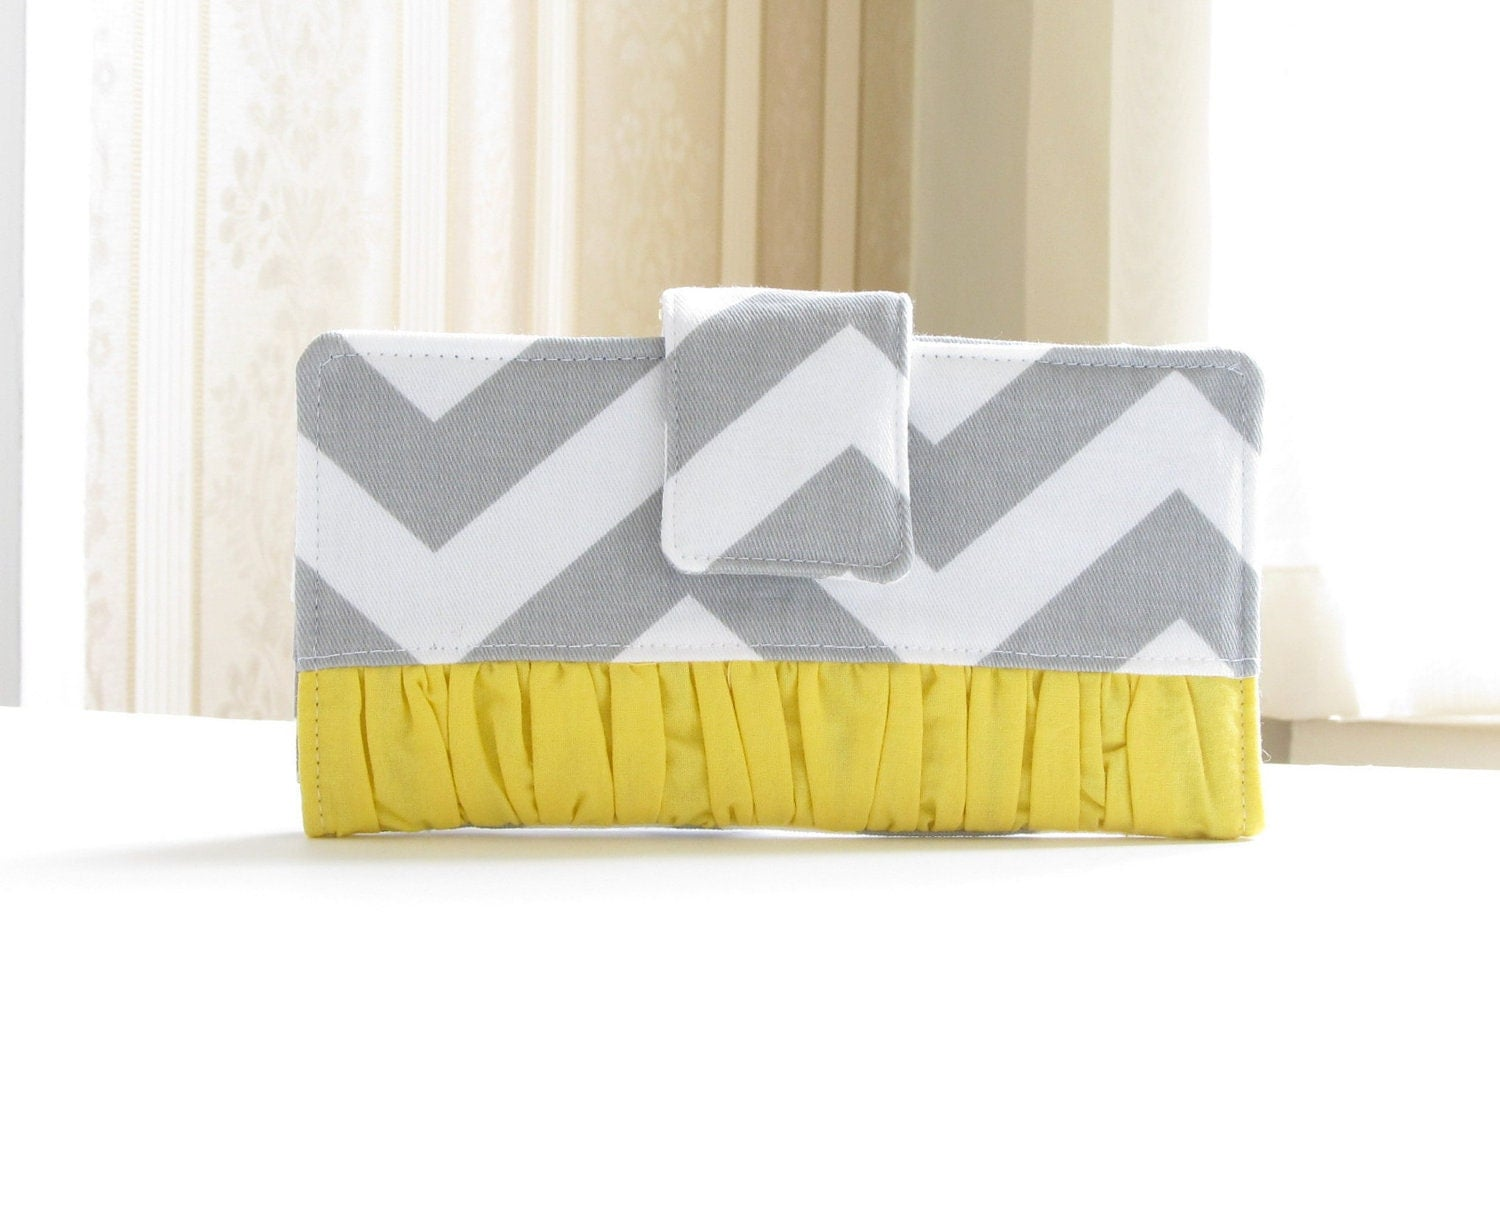 Women's Wallet, Gray and Yellow Chevron Bifold Wallet with Rouching, Cottage Chic Wallet - Made to Order - AccessoriesByBethany